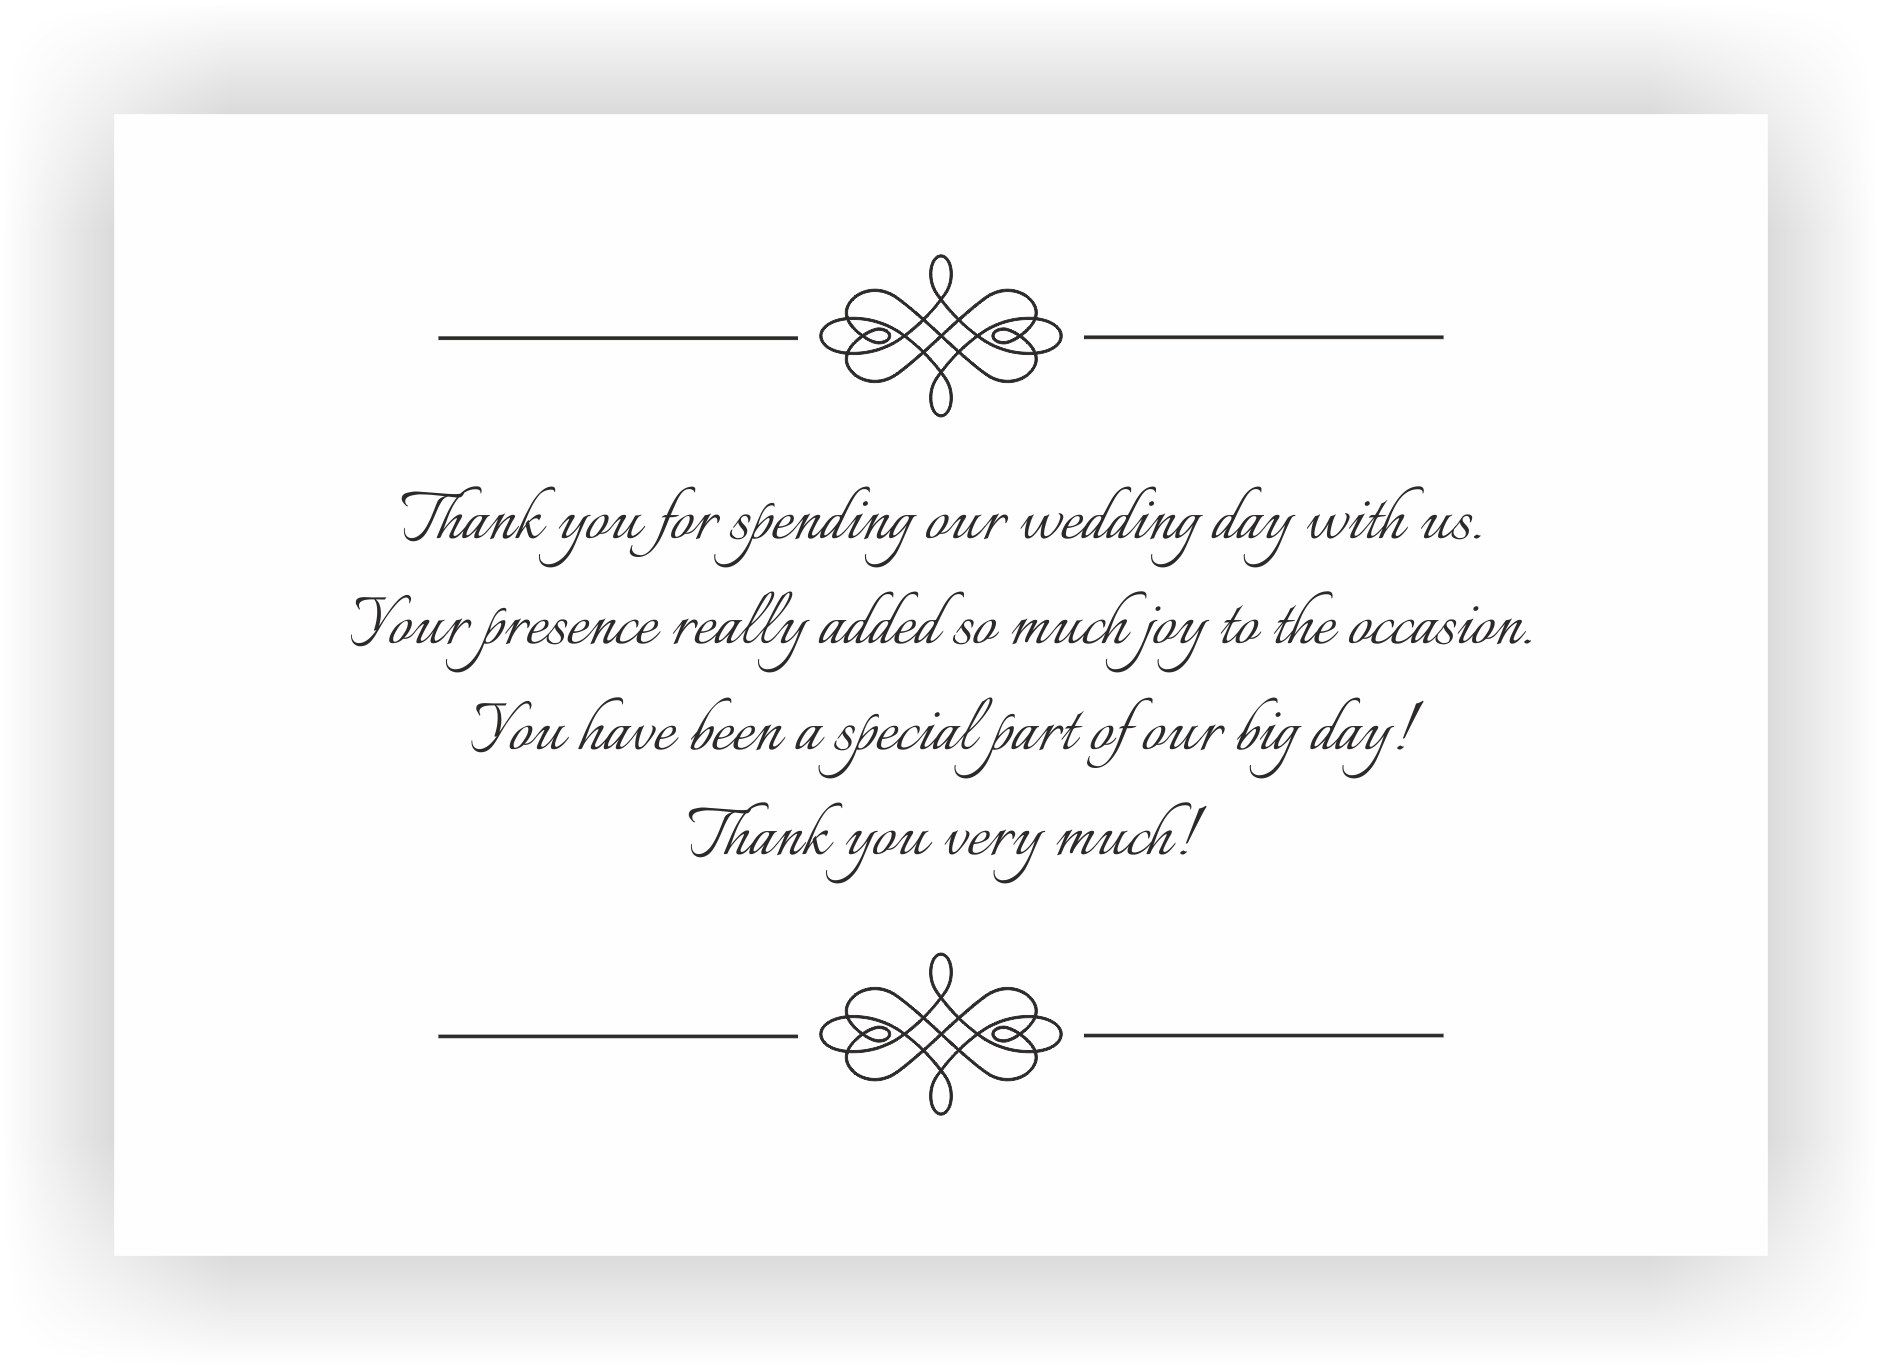 Wedding Return GiftsMessages